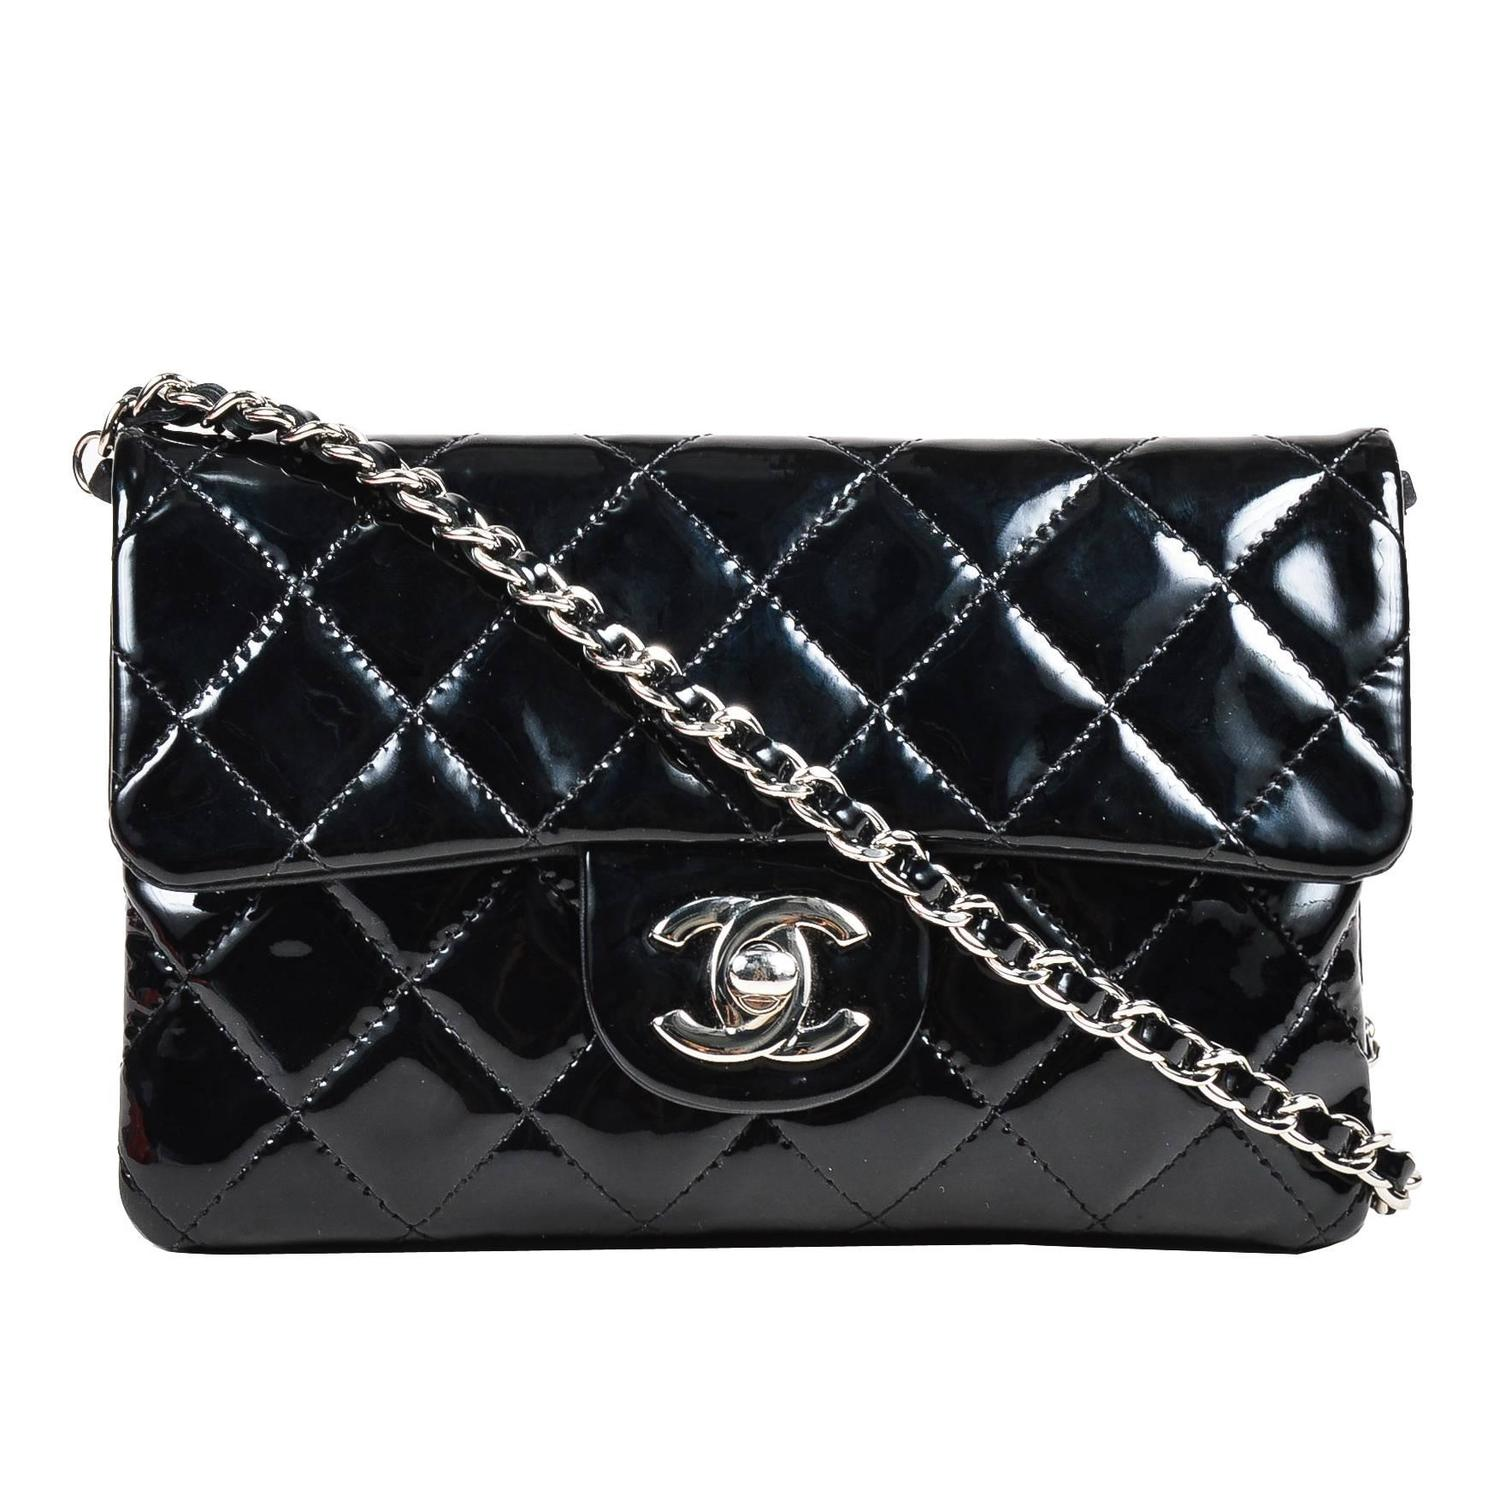 Leather quilted handbags and purses - Chanel Black Patent Leather Quilted Dual Pocket Crossbody Chain Strap Bag At 1stdibs